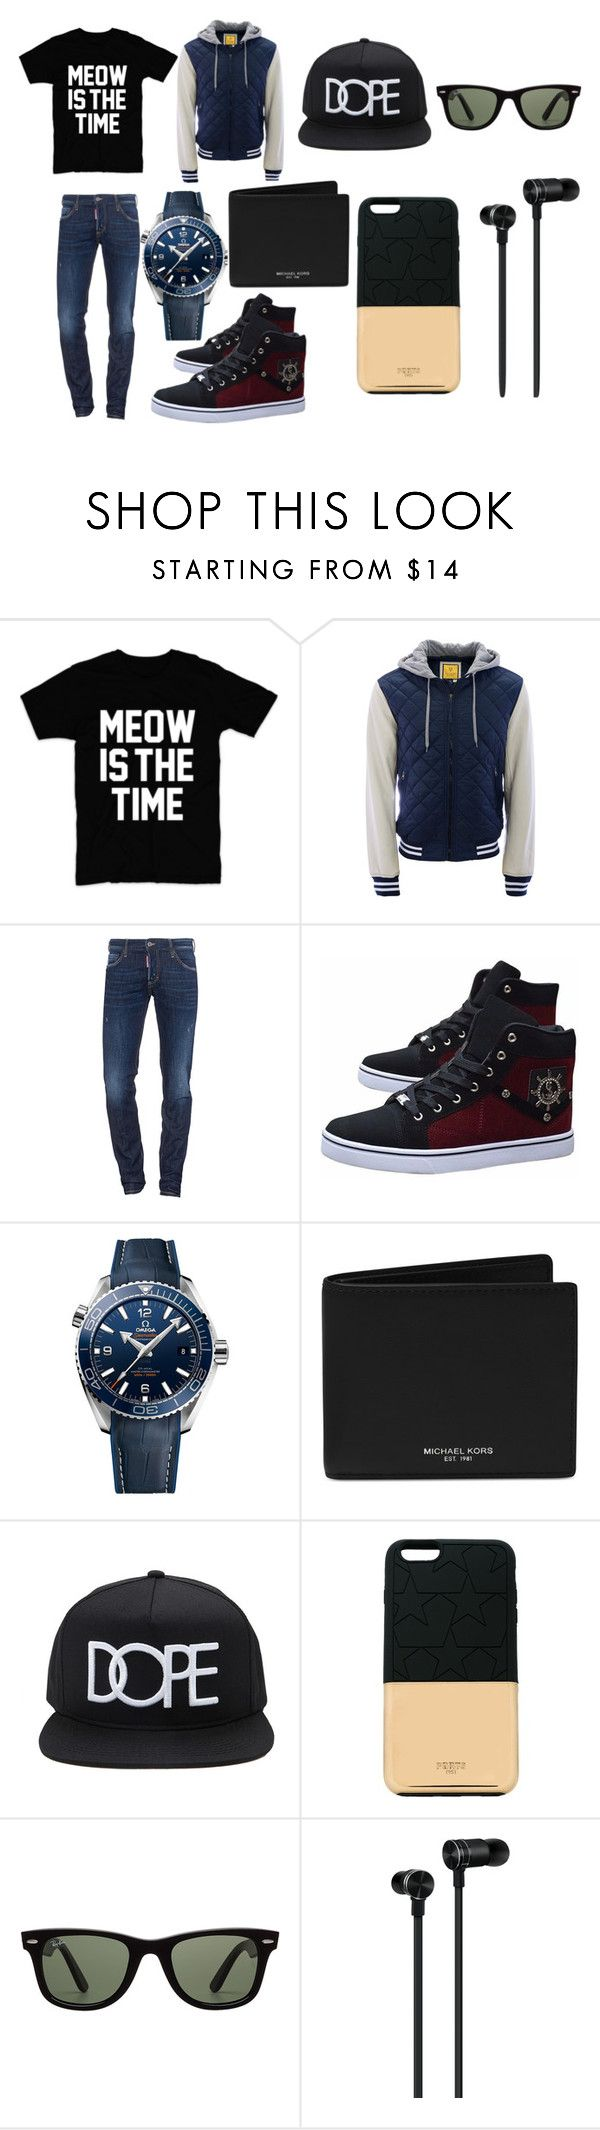 """Diego/Verónica"" by mark-tuan ❤ liked on Polyvore featuring Aéropostale, Dsquared2, OMEGA, Michael Kors, 21 Men, Ports 1961, Ray-Ban, Master & Dynamic, men's fashion and menswear"